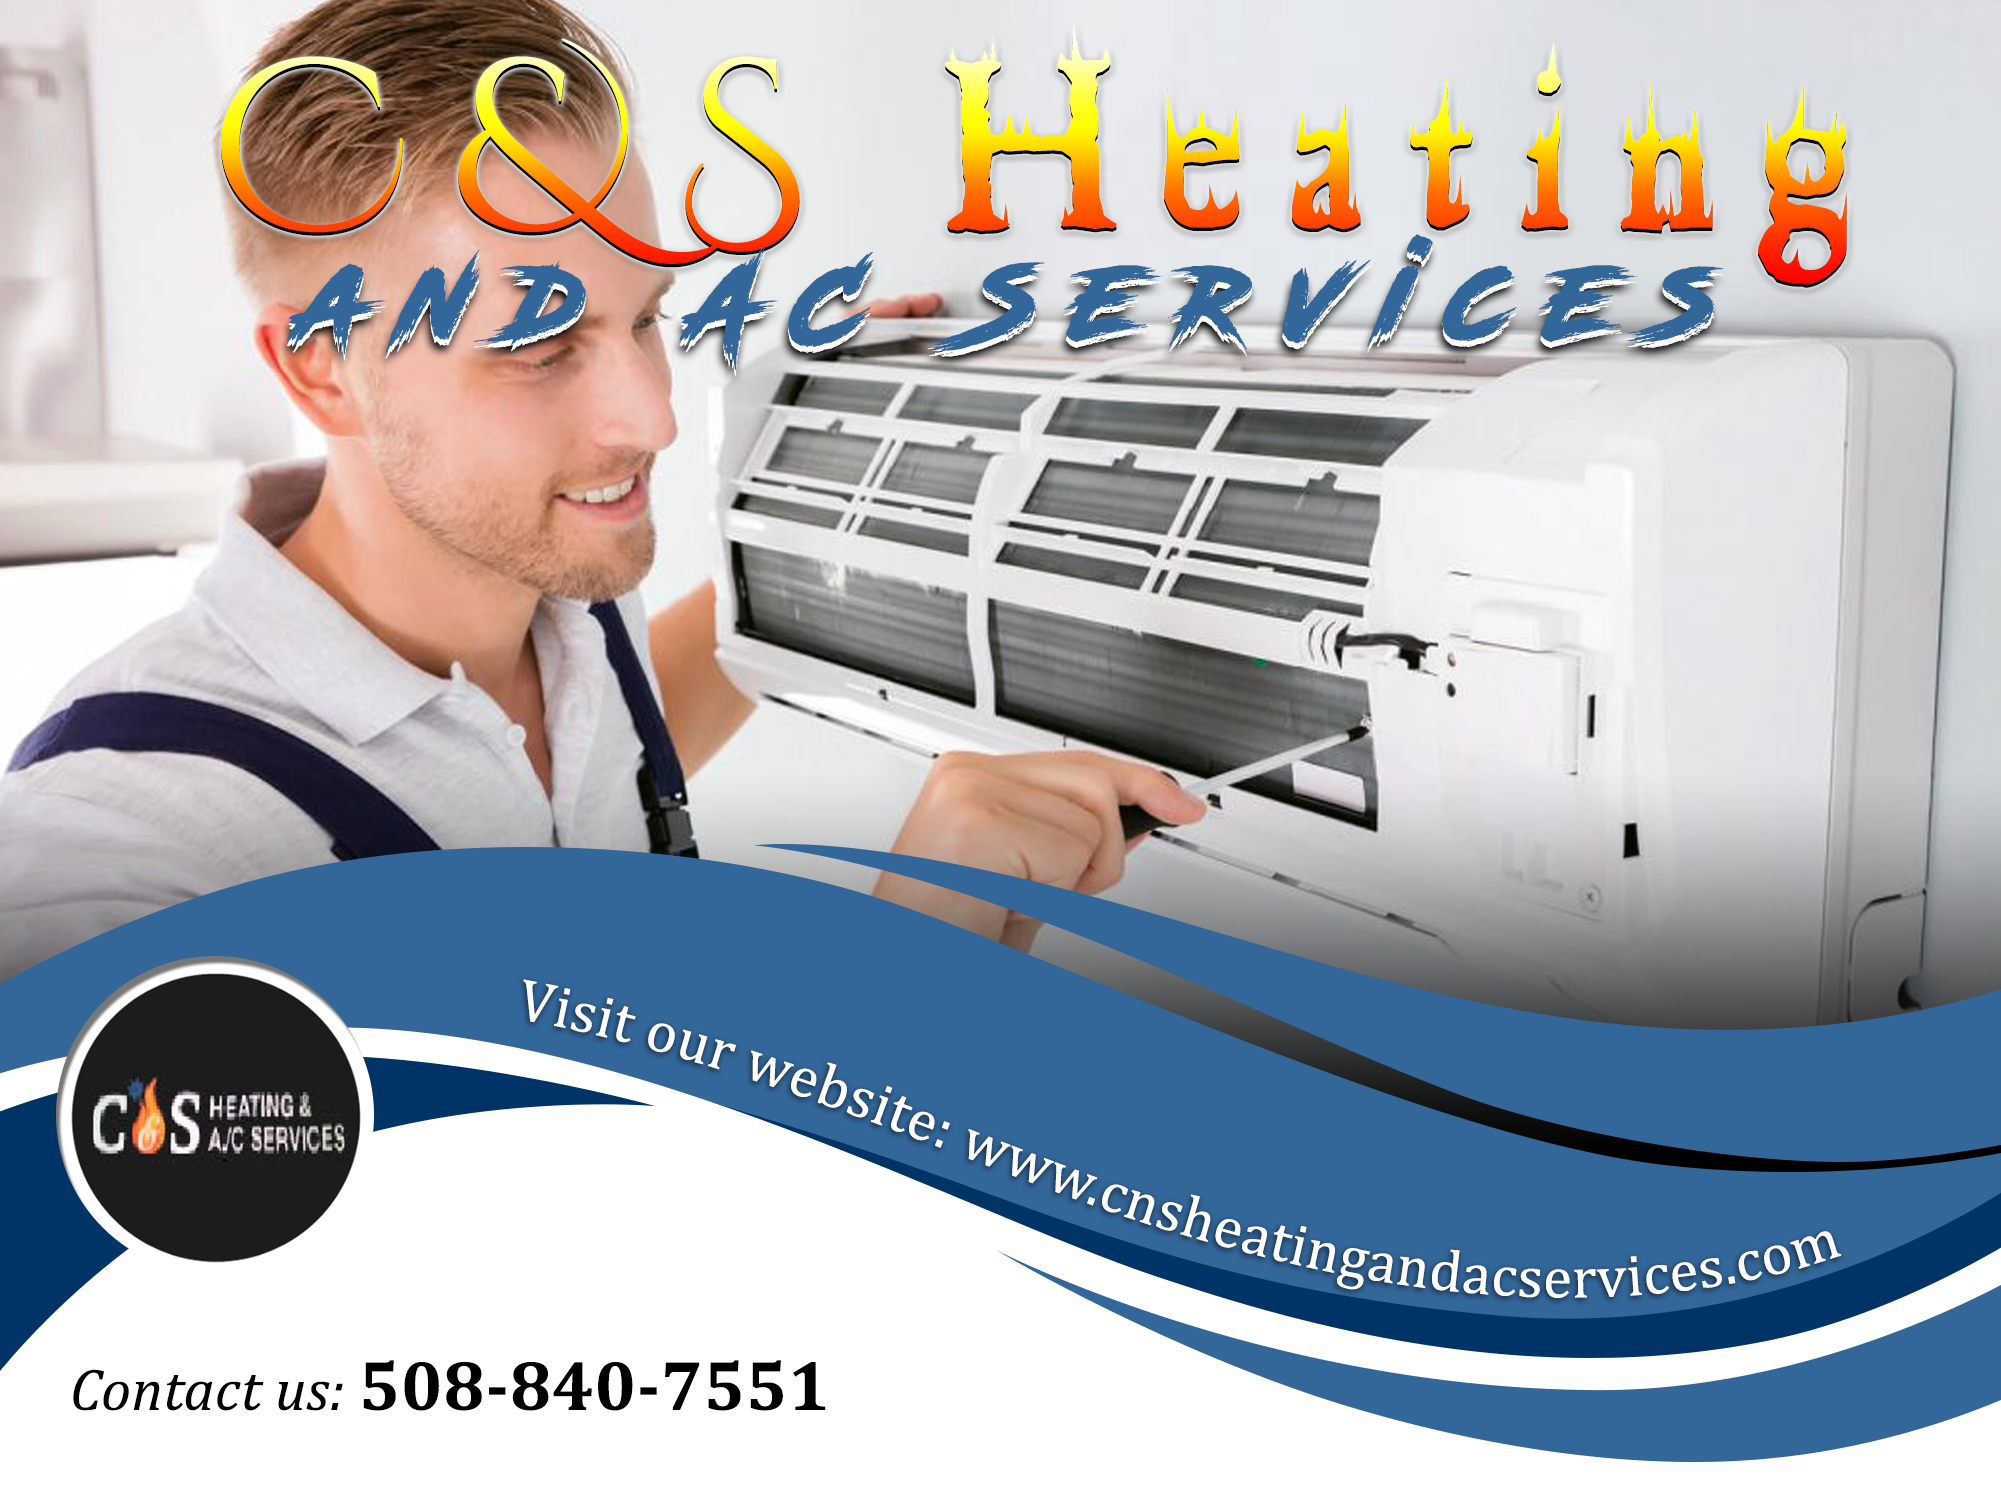 C&S Heating and AC Services has been in the business for